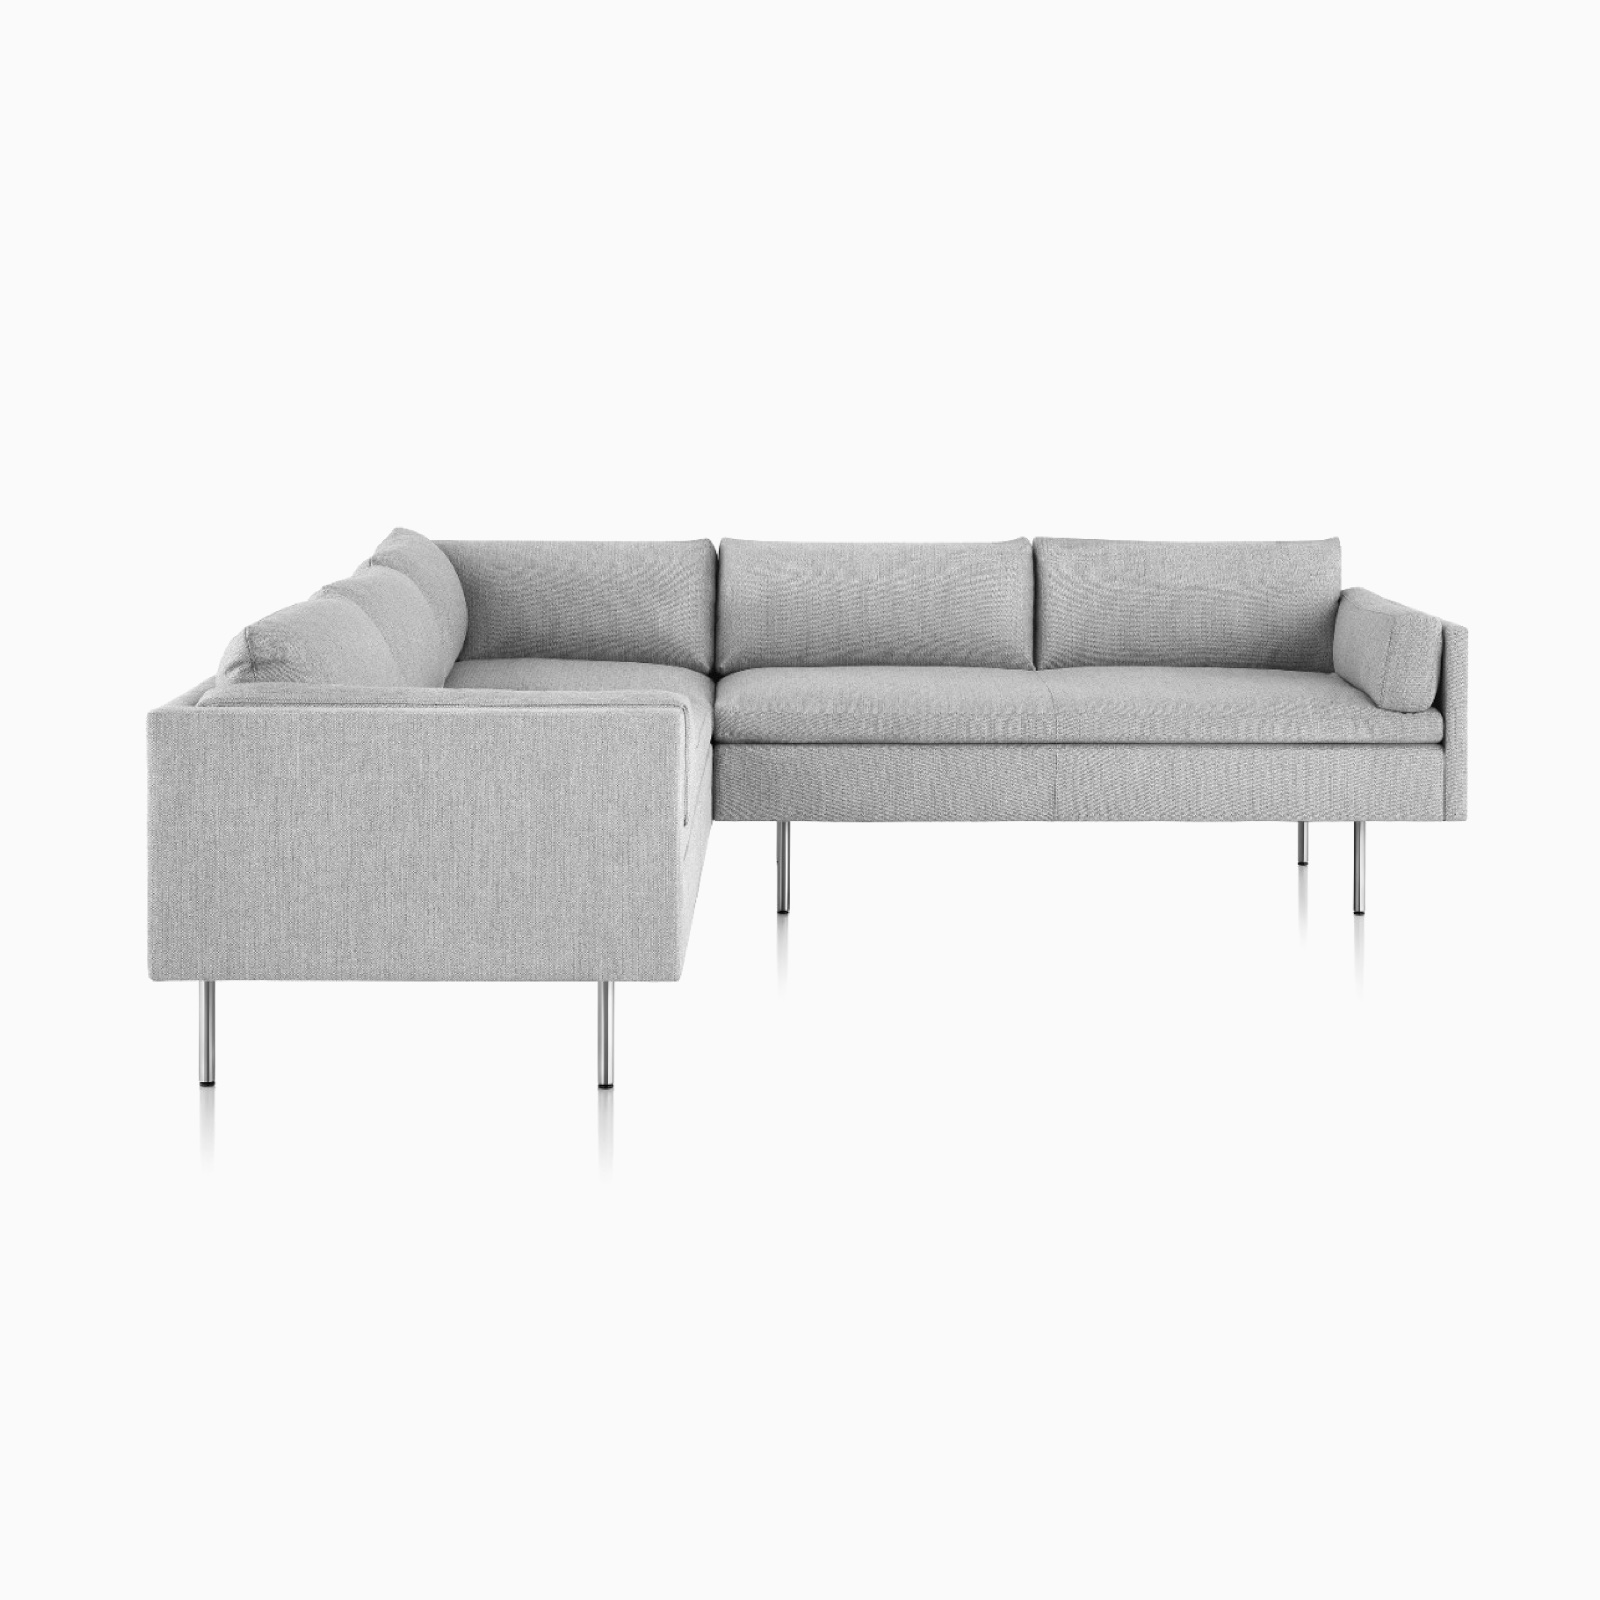 A grey Bolster Sofa in an L-shaped configuration, viewed from the front.